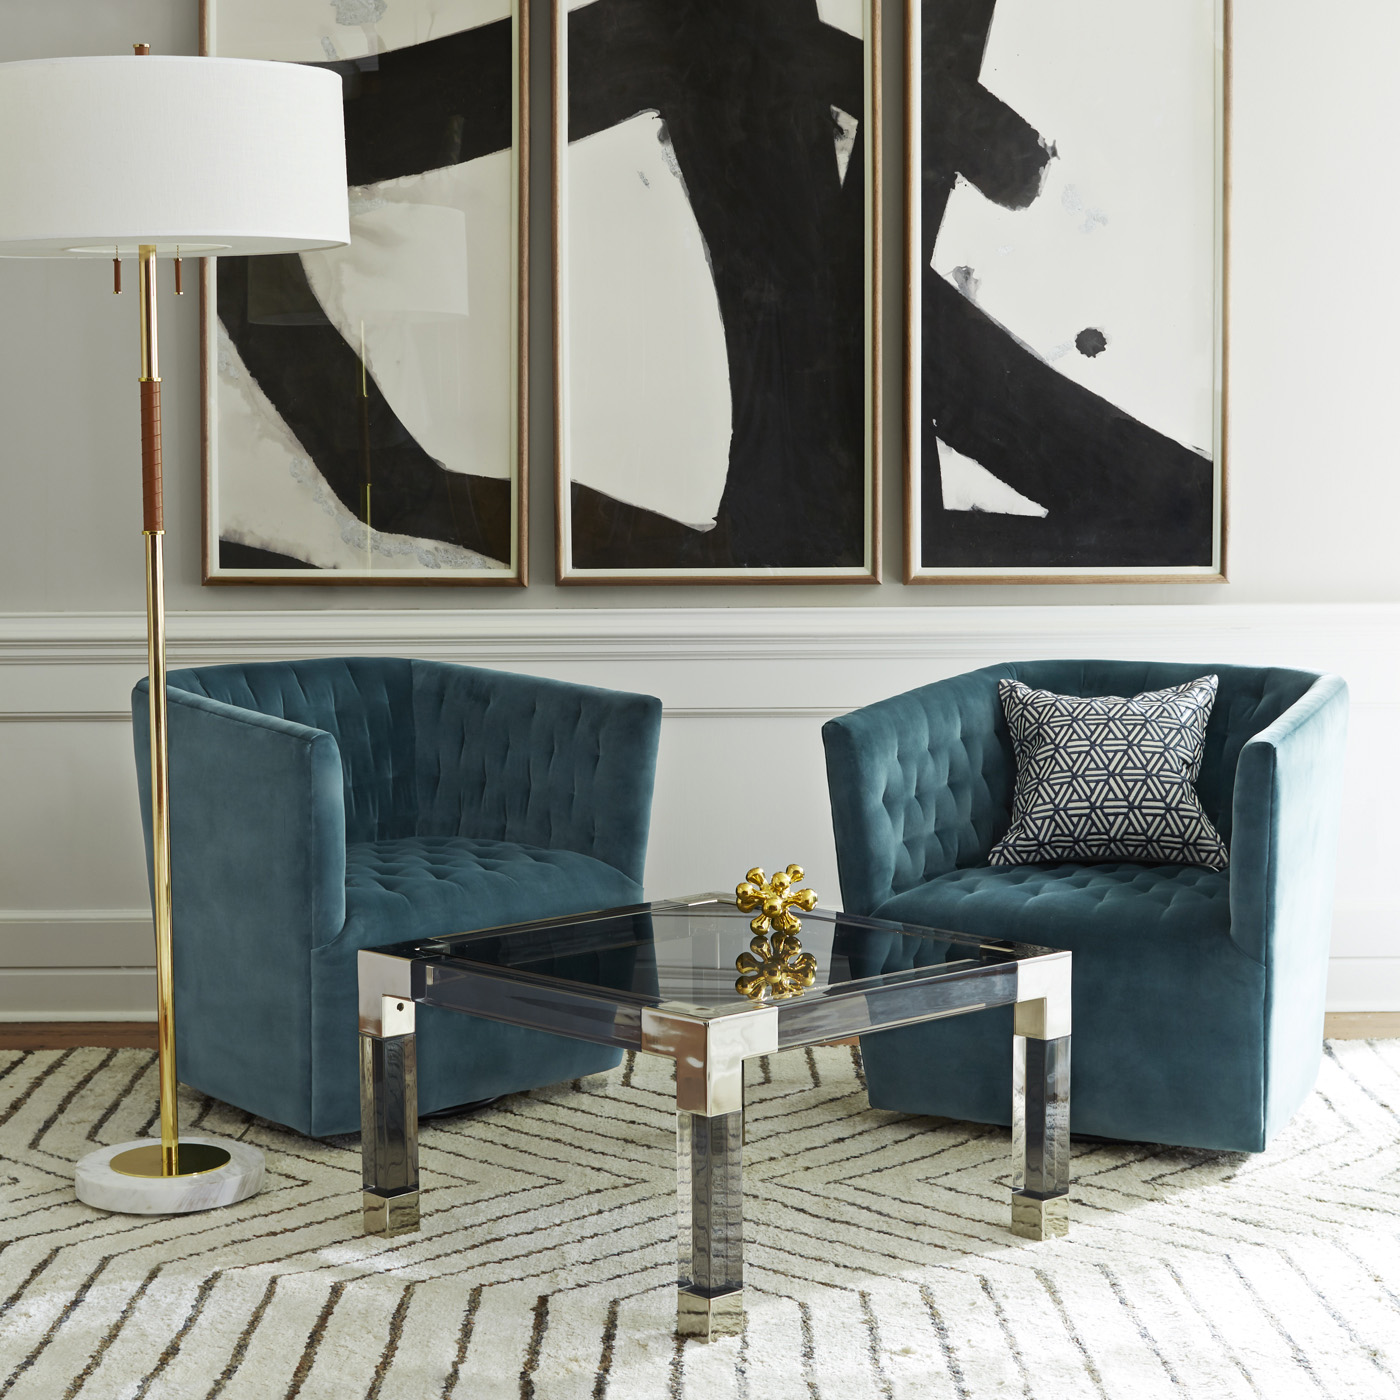 Jonathan Adler Fall Enrichmint Forum And New Introductions Catherine M Austin Interior Design